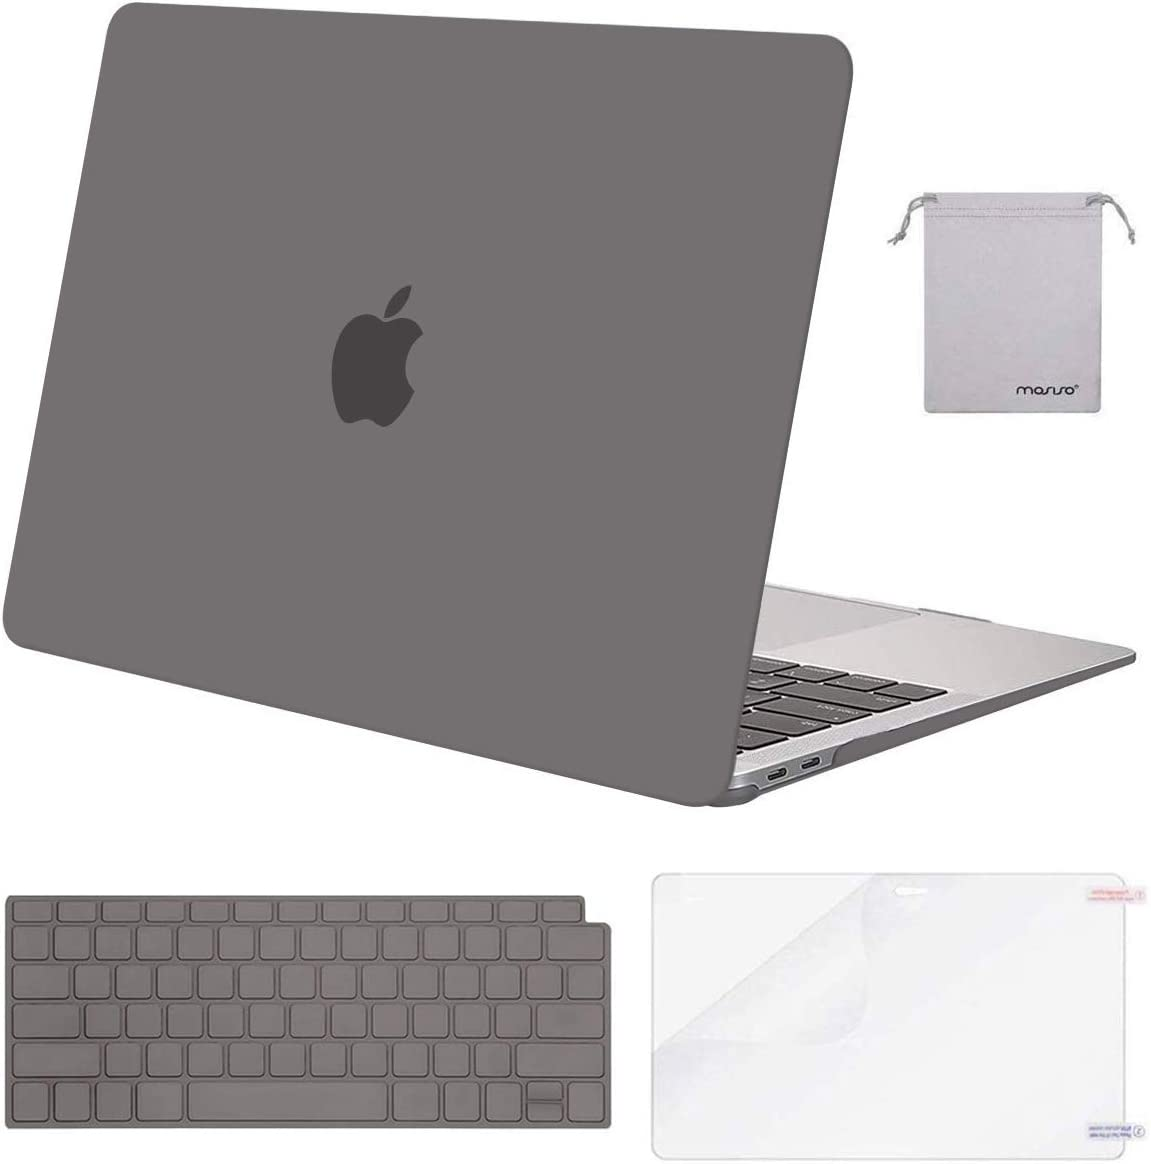 MOSISO MacBook Air 13 inch Case 2020 2019 2018 Release A2179 A1932 with Retina Display, Plastic Hard Shell&Keyboard Cover&Screen Protector&Storage Bag Compatible with MacBook Air 13, Gray